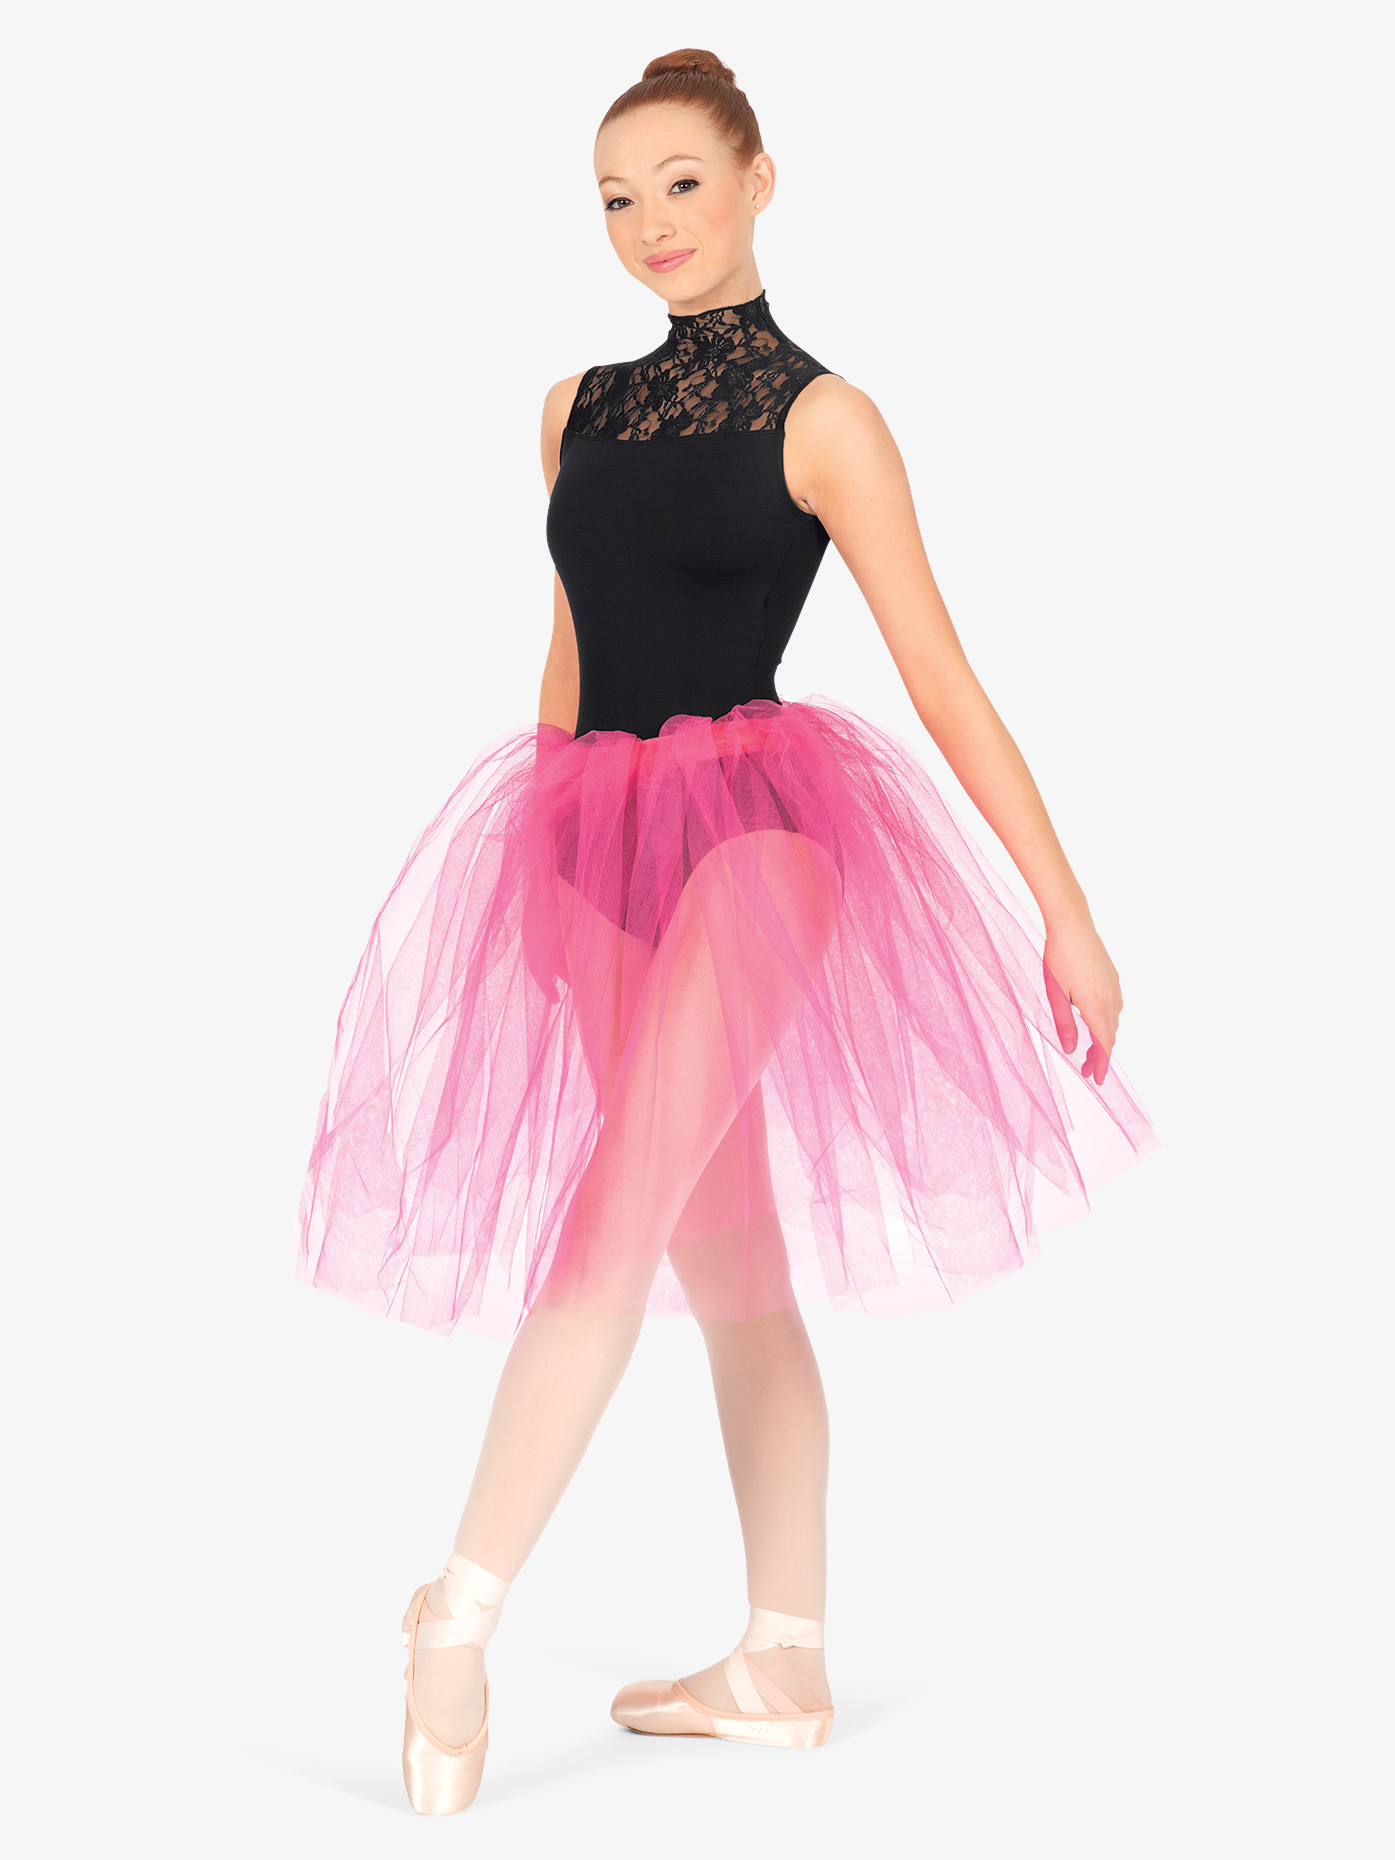 89afe30ad323 Long Juliet Tutu - Tutus   Skirts